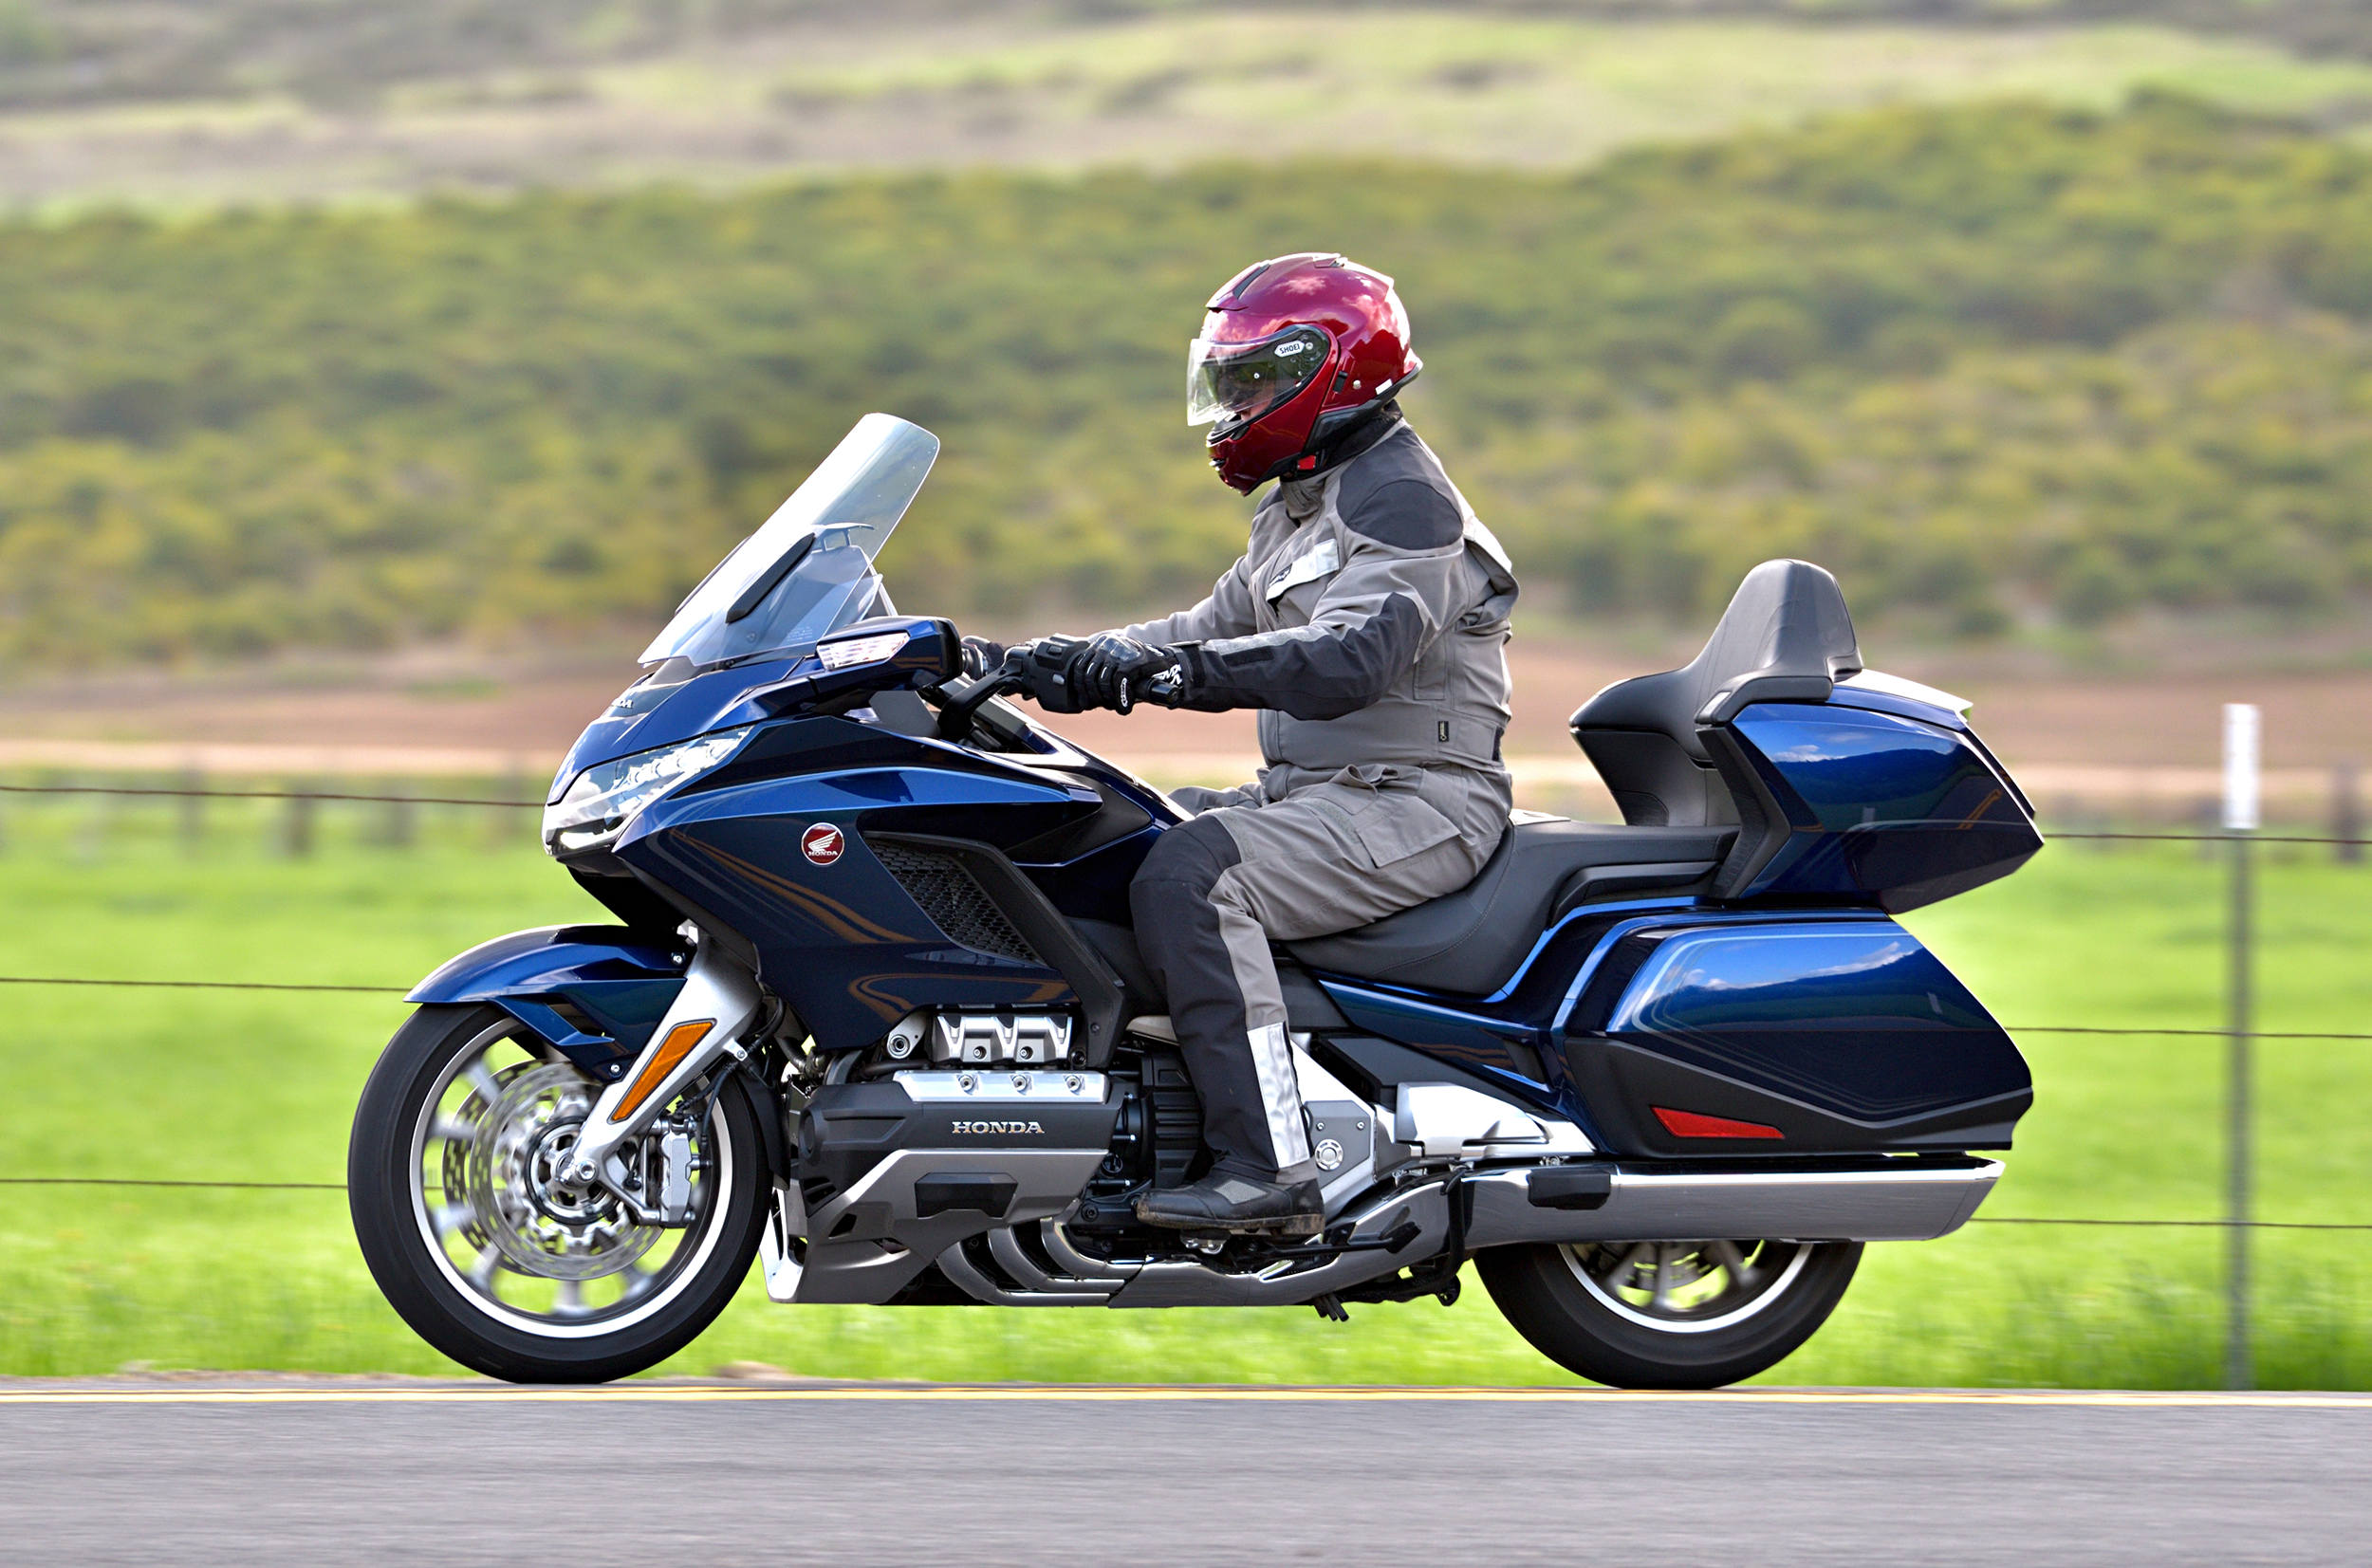 2018 Honda Gold Wing Tour Dct Md Ride Review